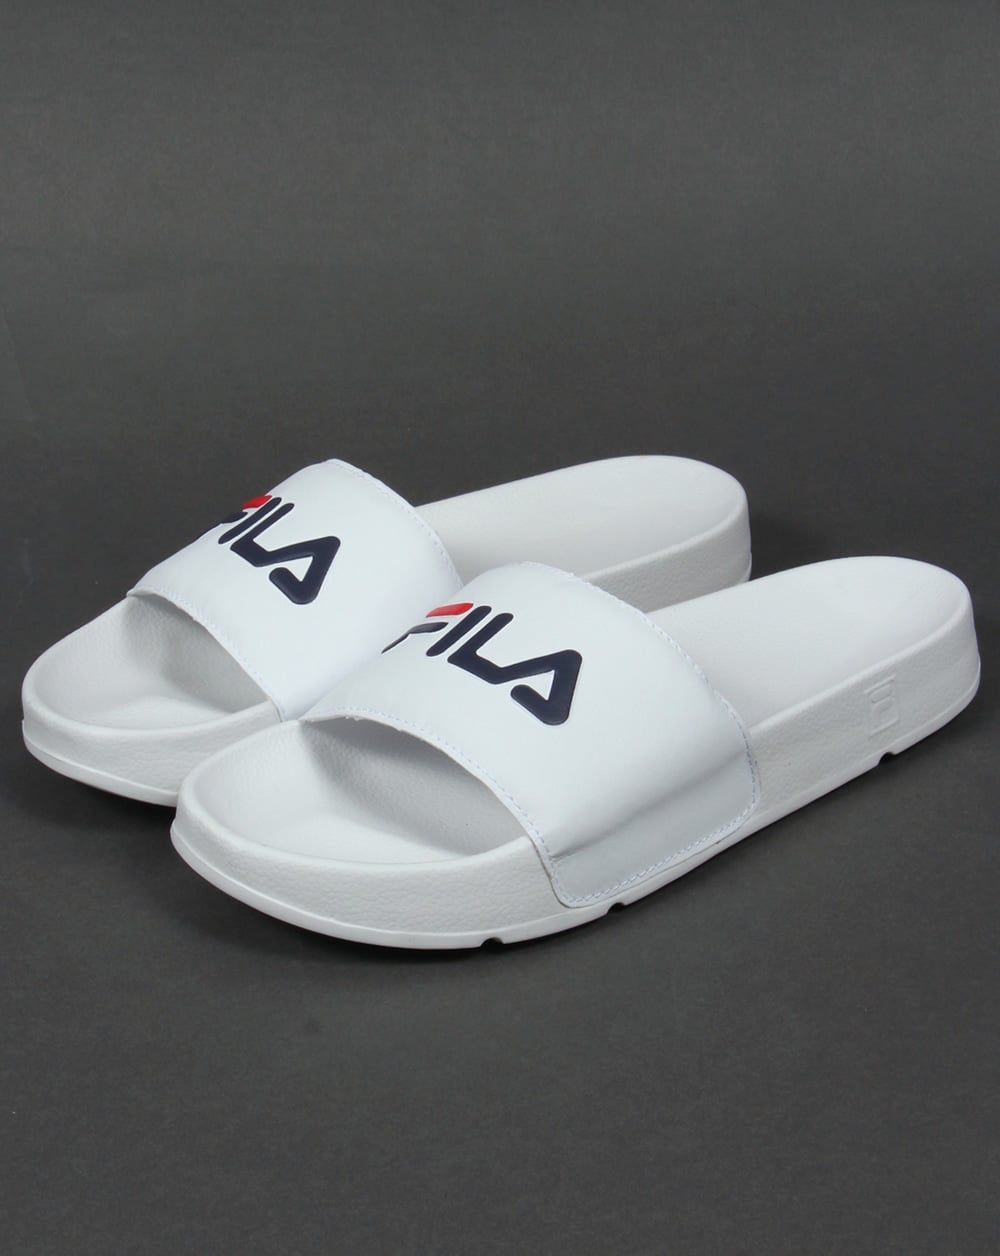 bff174084d71 Slip Into These Summer Slides With 80s Casual Classics - 80 s Casual ...